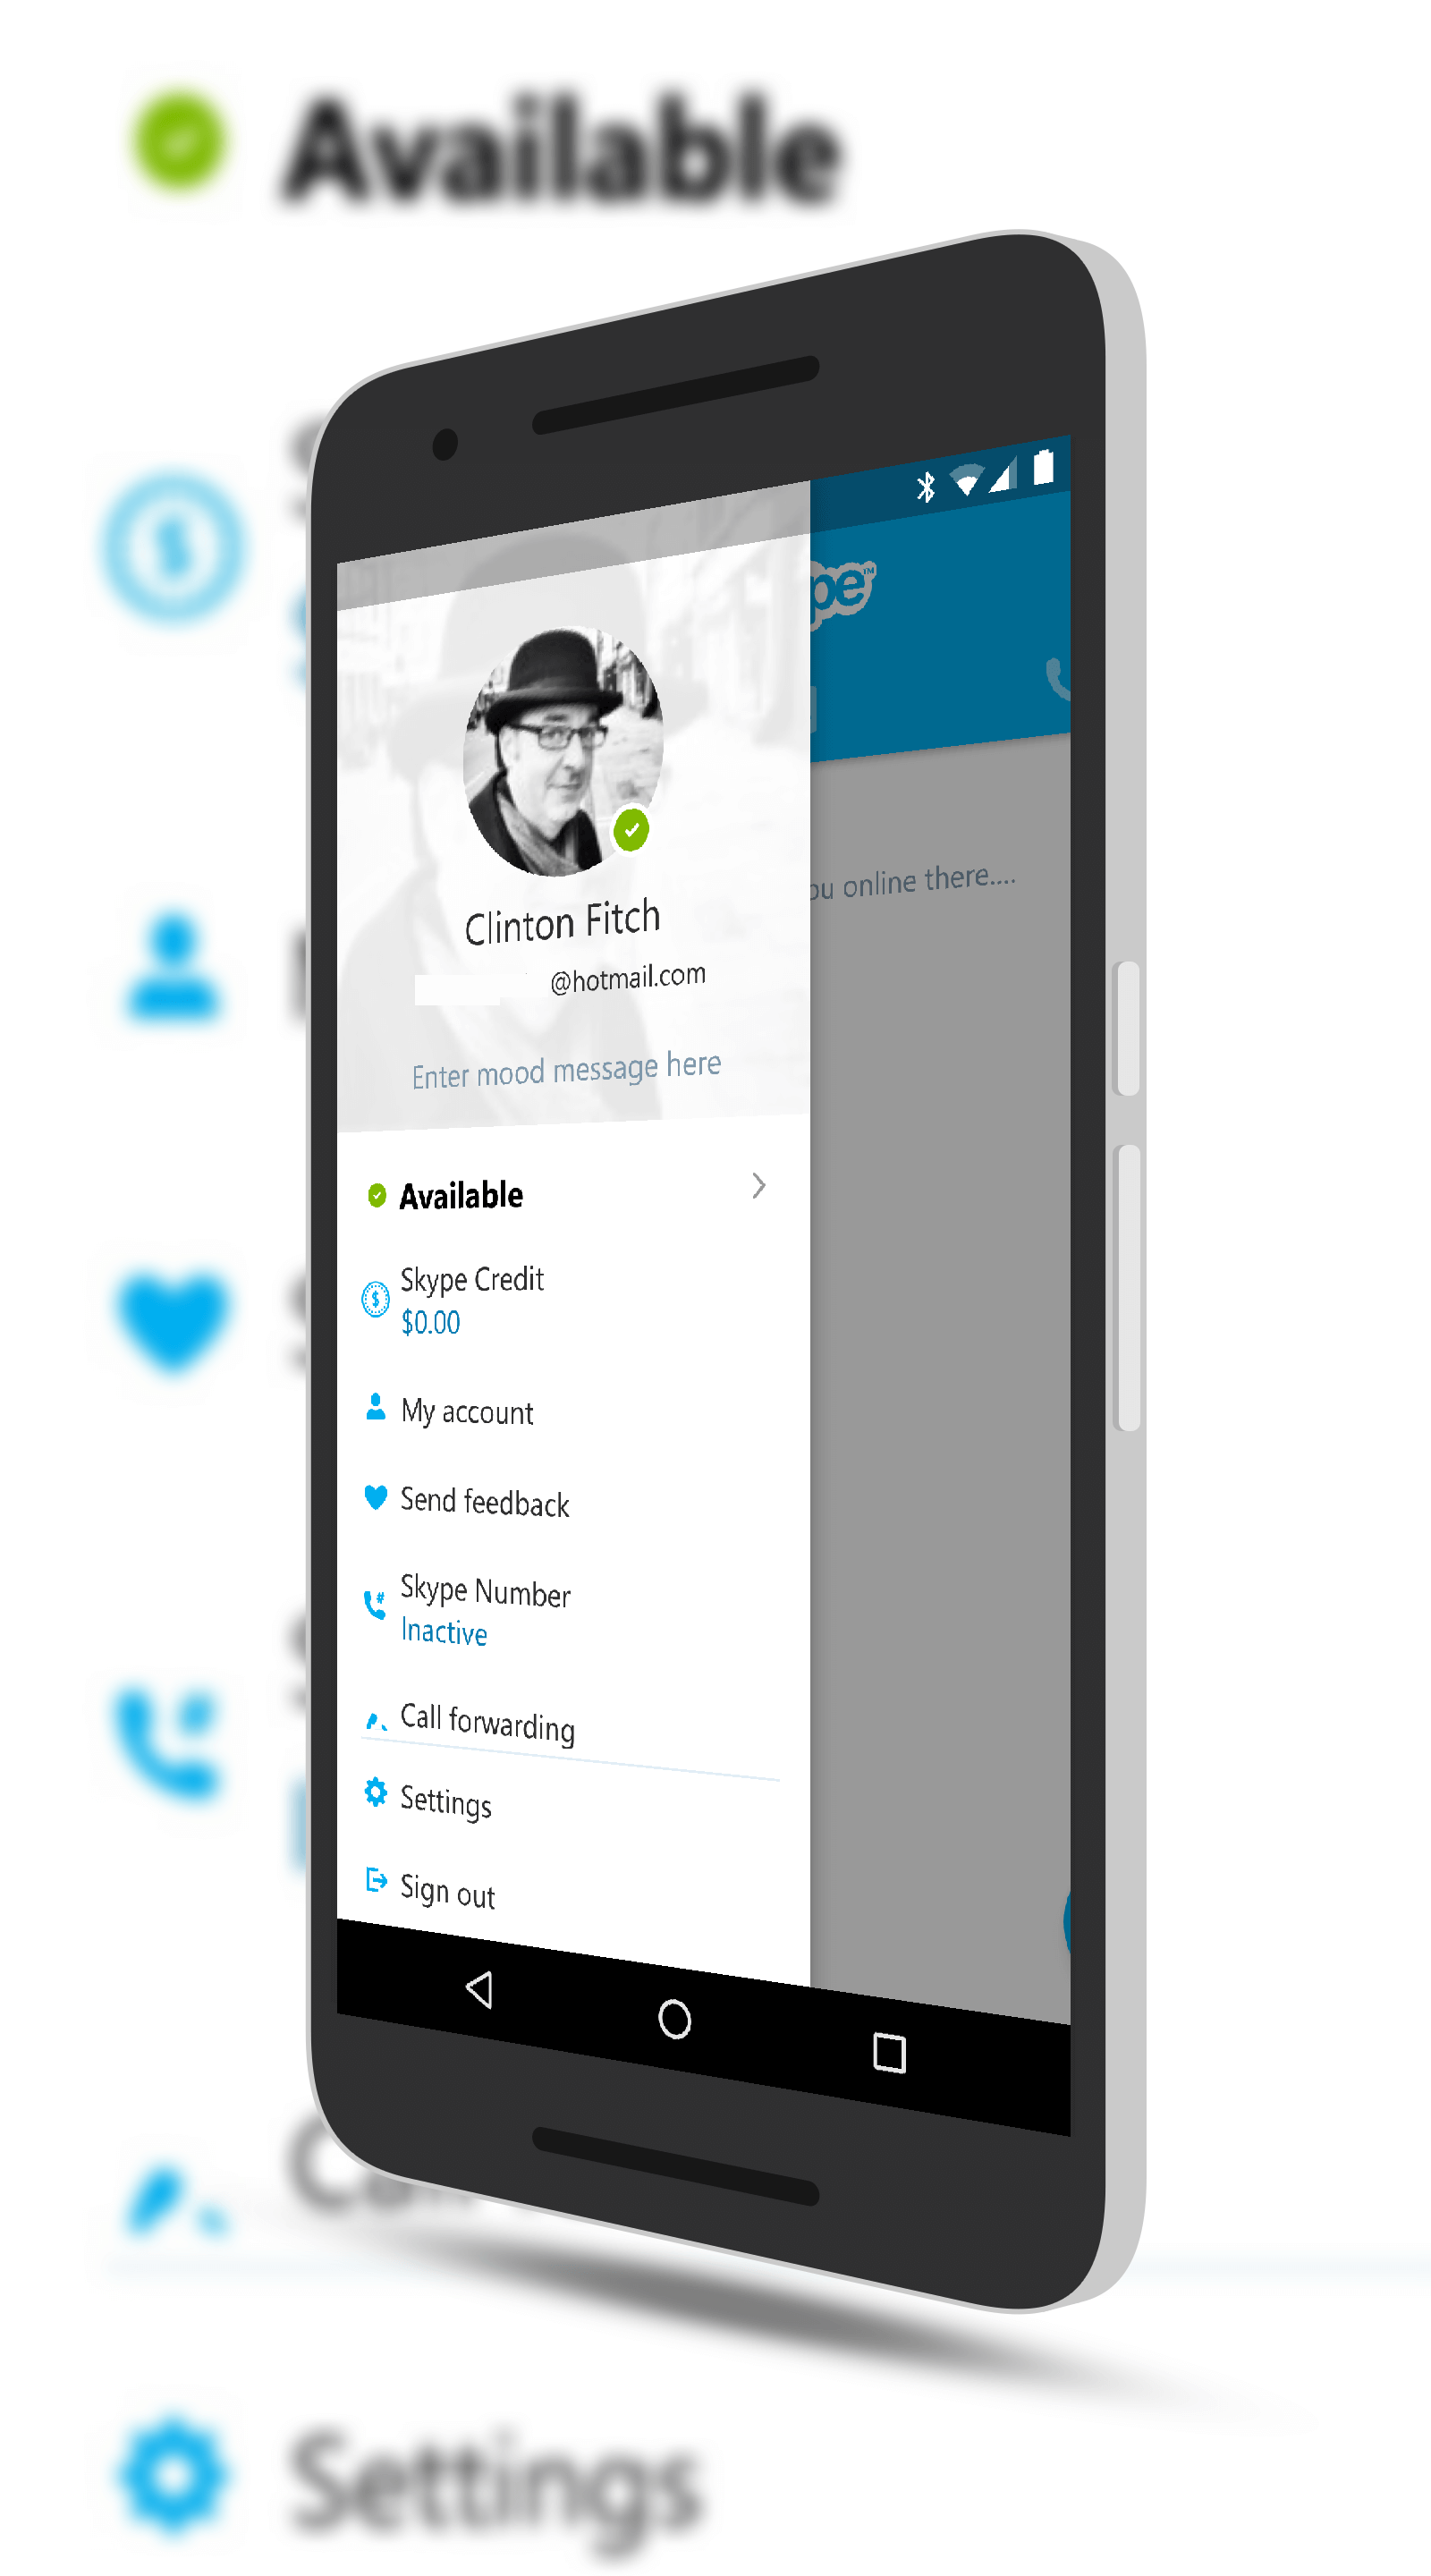 skype for android sees minor changes in update clintonfitch